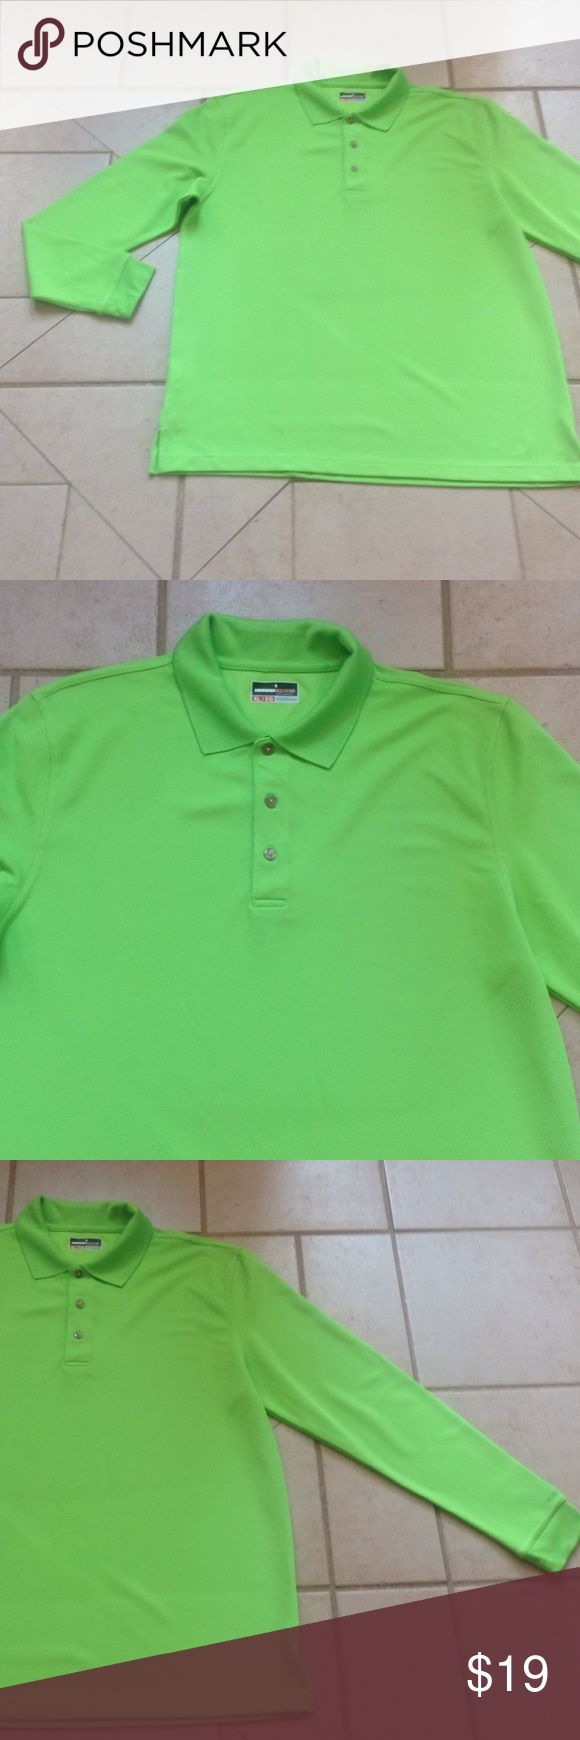 GRAND SLAM Performance Lime Green Shirt  Sz XL GREAT BUY! Describes this Lime Green GRAND PERFORMANCE Shirt that measures 25 inches from armpit to armpit; and is 31 inches in overall length. grand slam performance Shirts